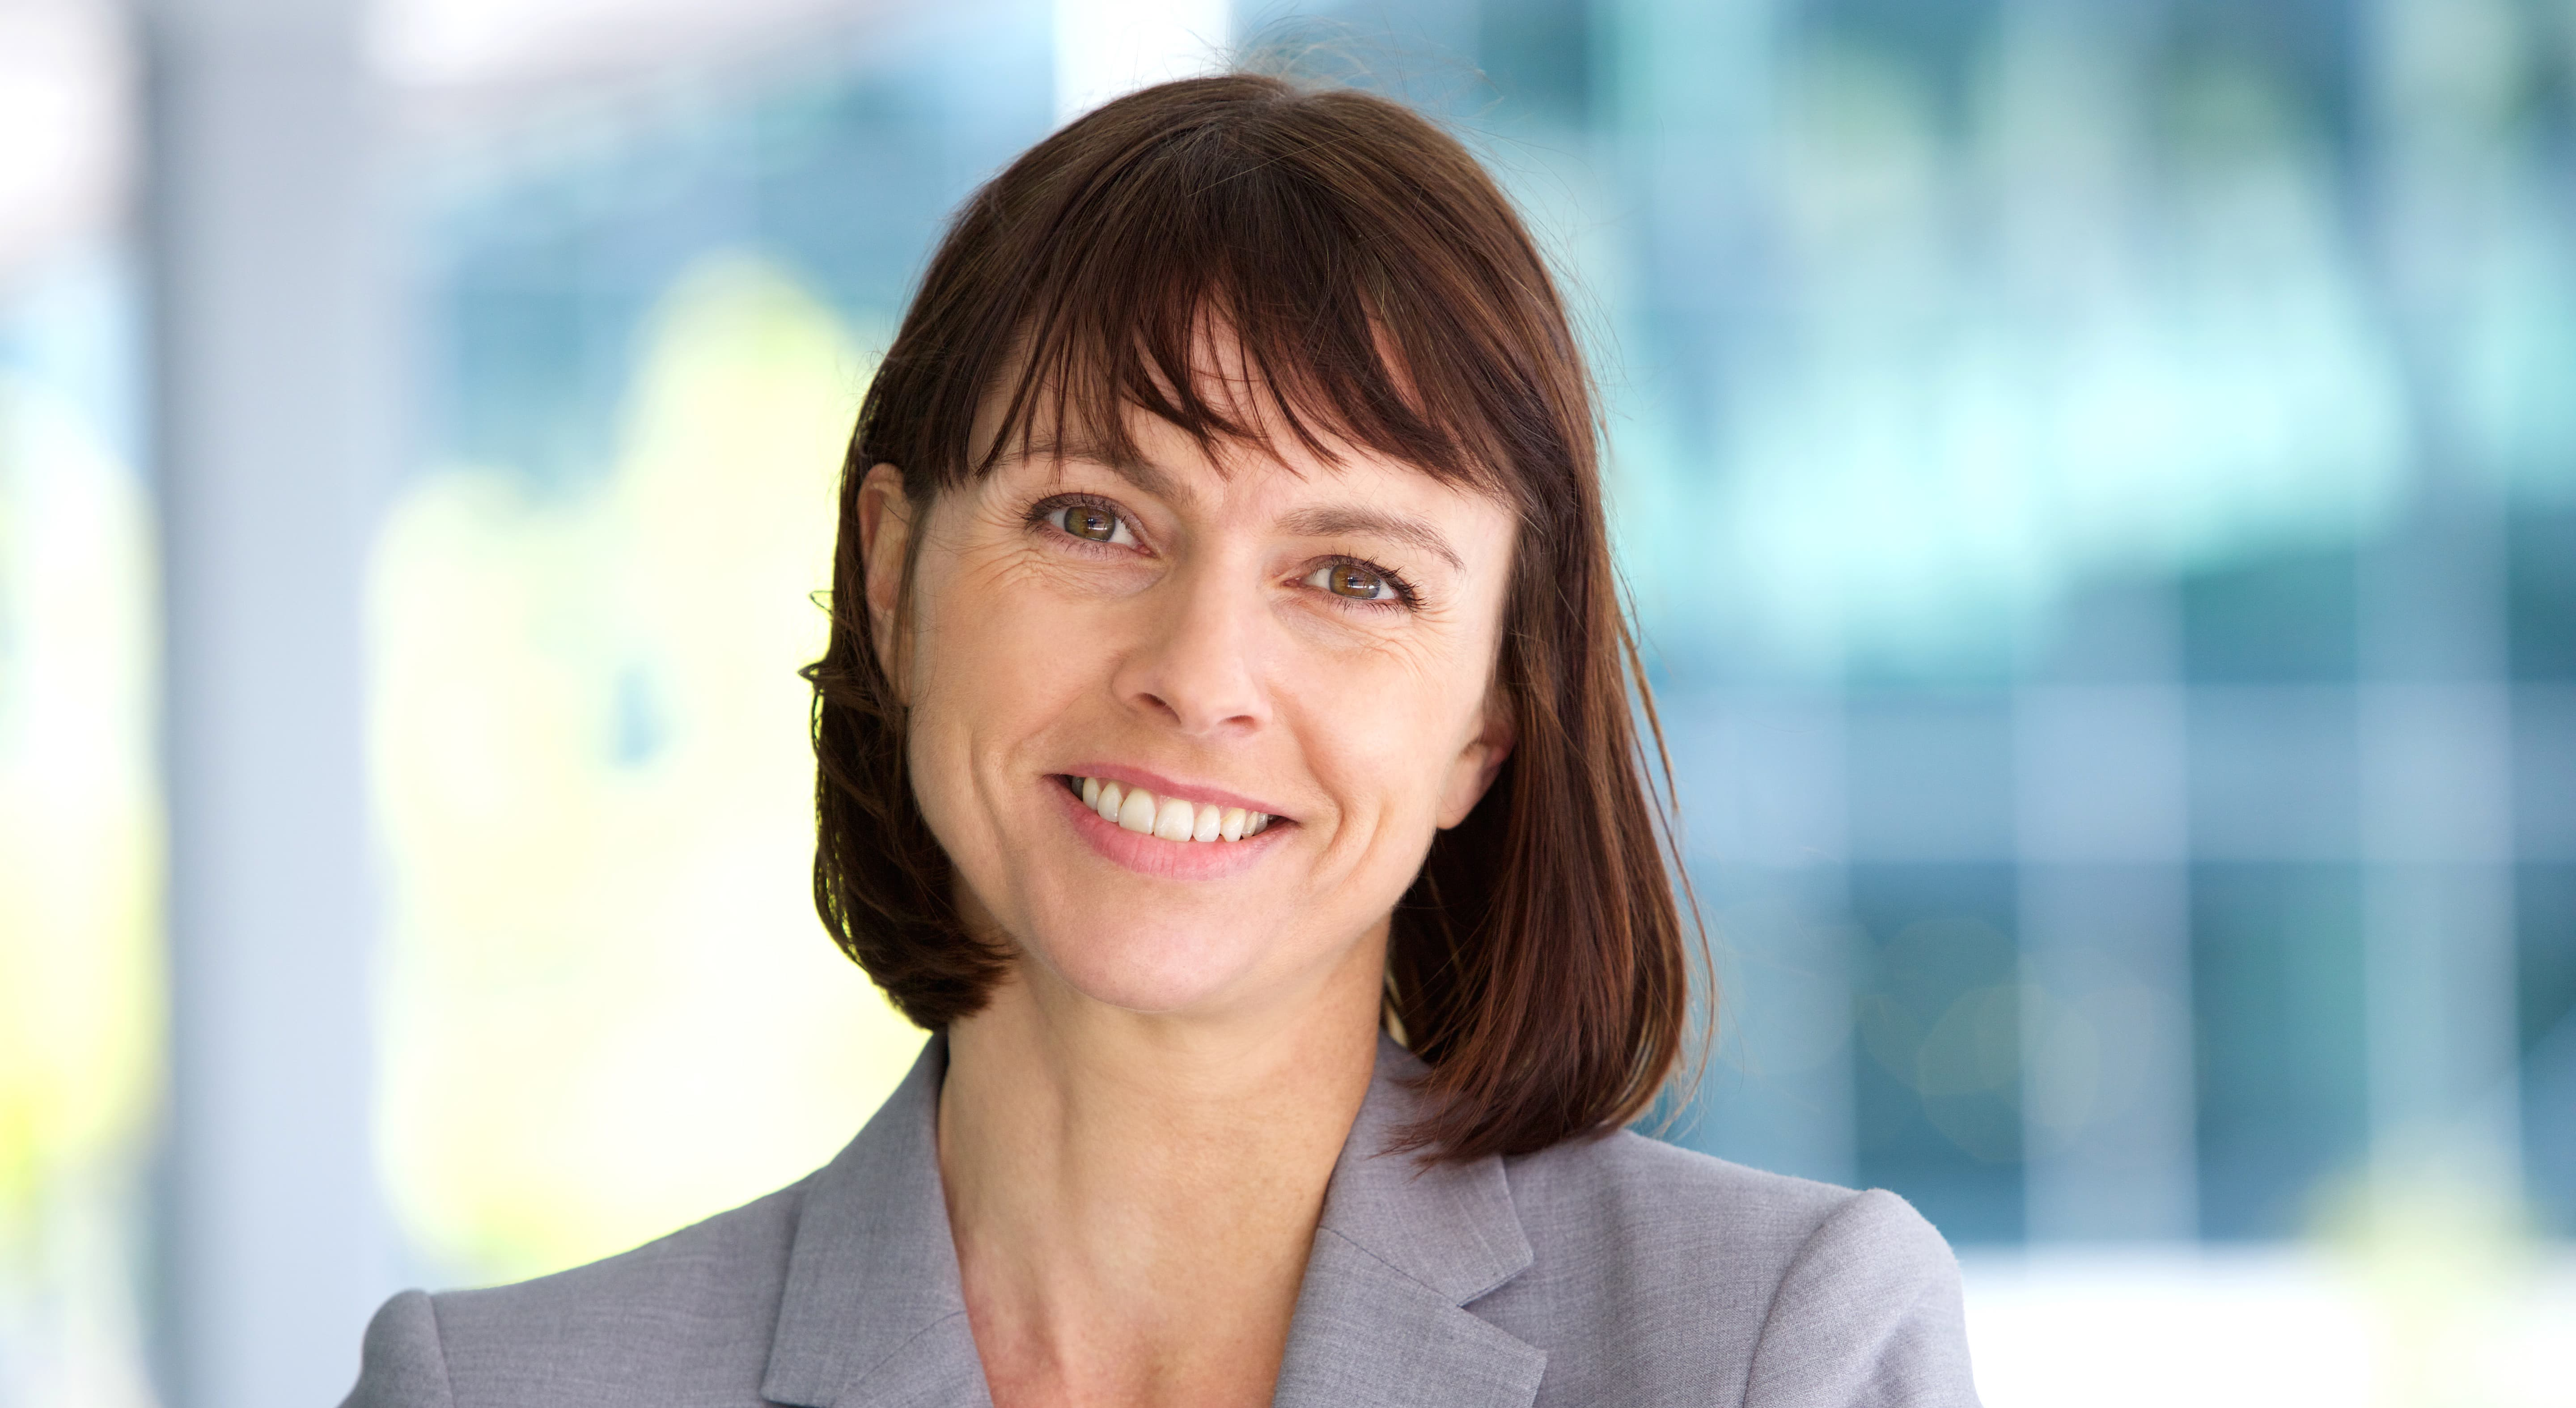 Corporate woman smiling to camera